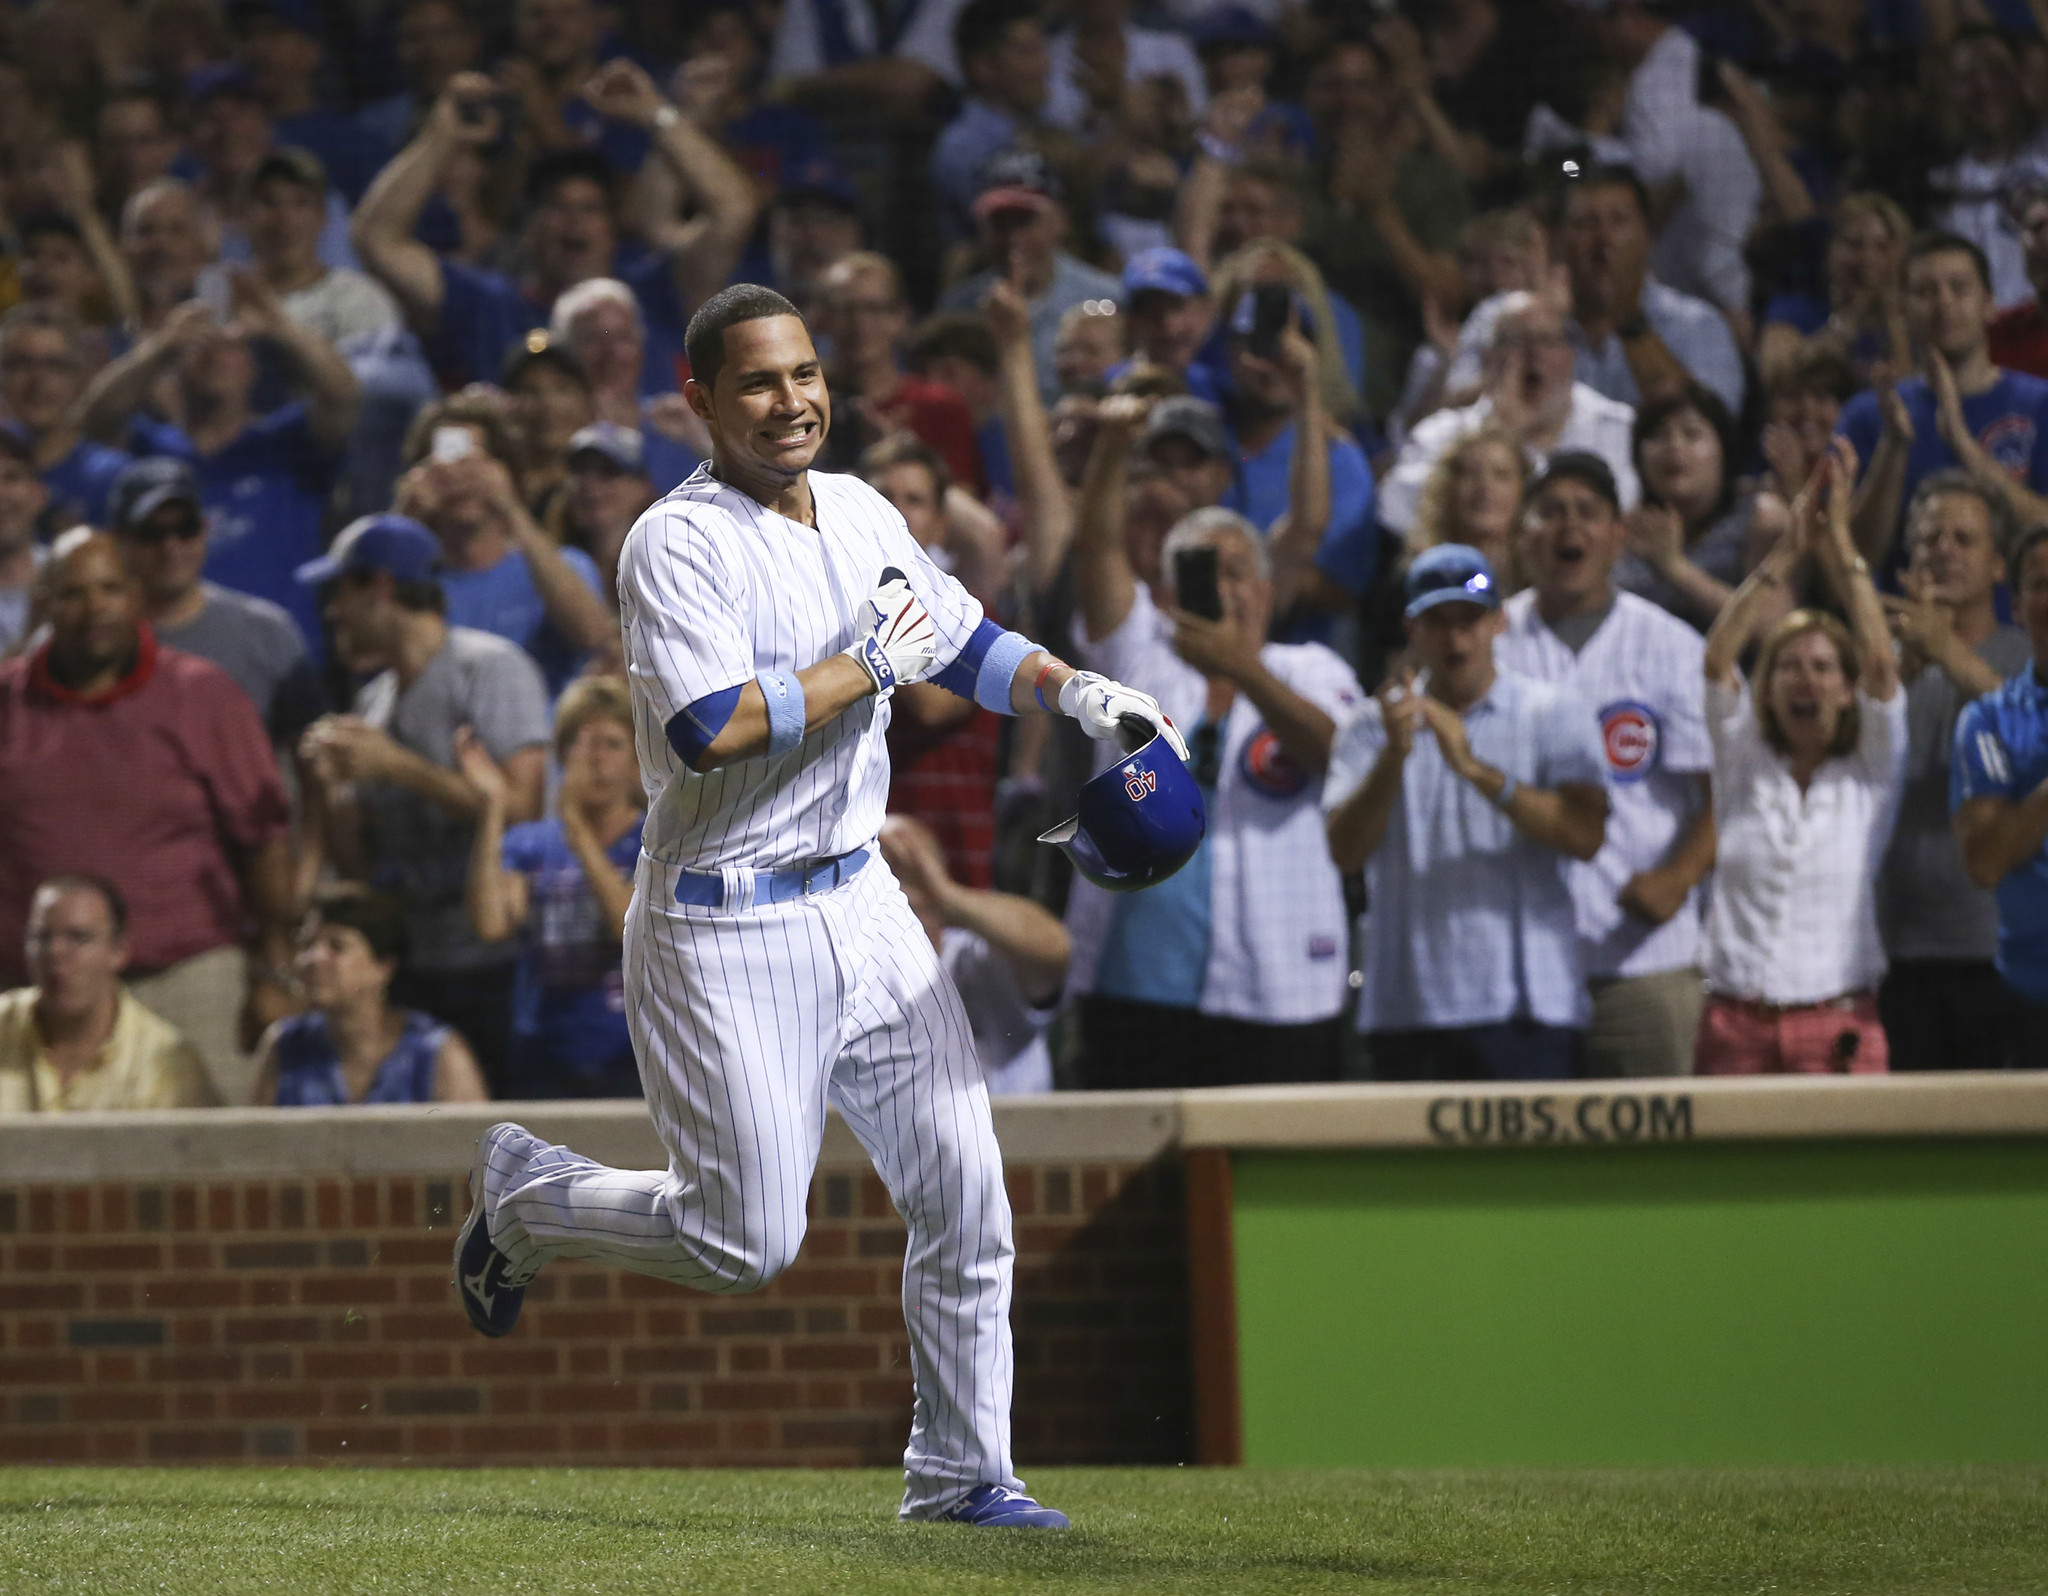 Cubs' Willson Contreras on home run: 'I feel like I'm in the high sky' - Chicago Tribune